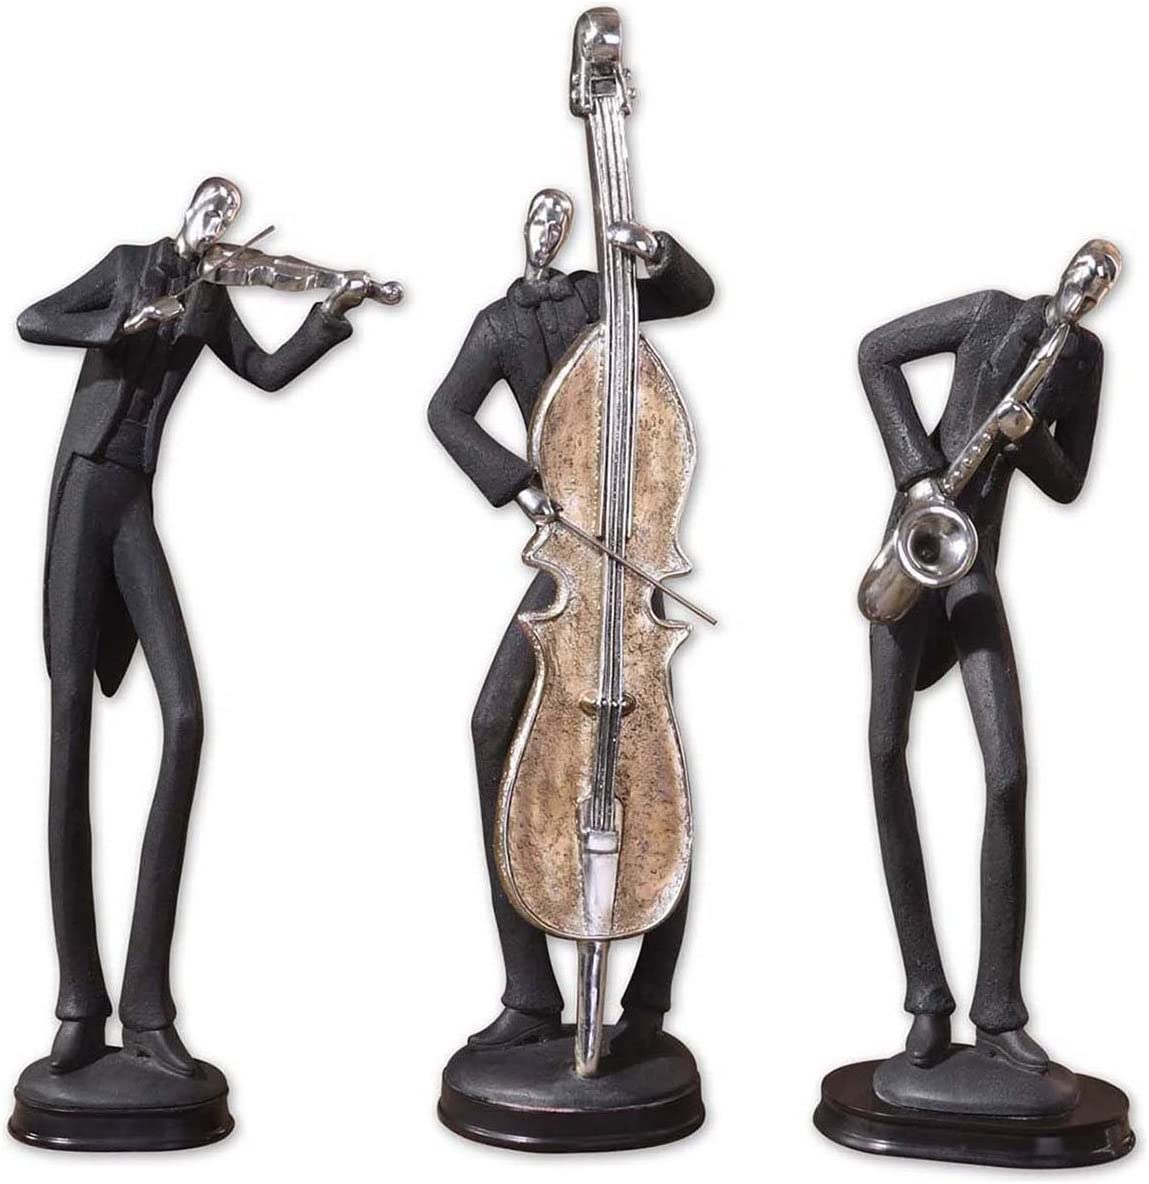 Uttermost, Slate Gray Musicians Accessories 4.375 x 5 x 18 Set of 3